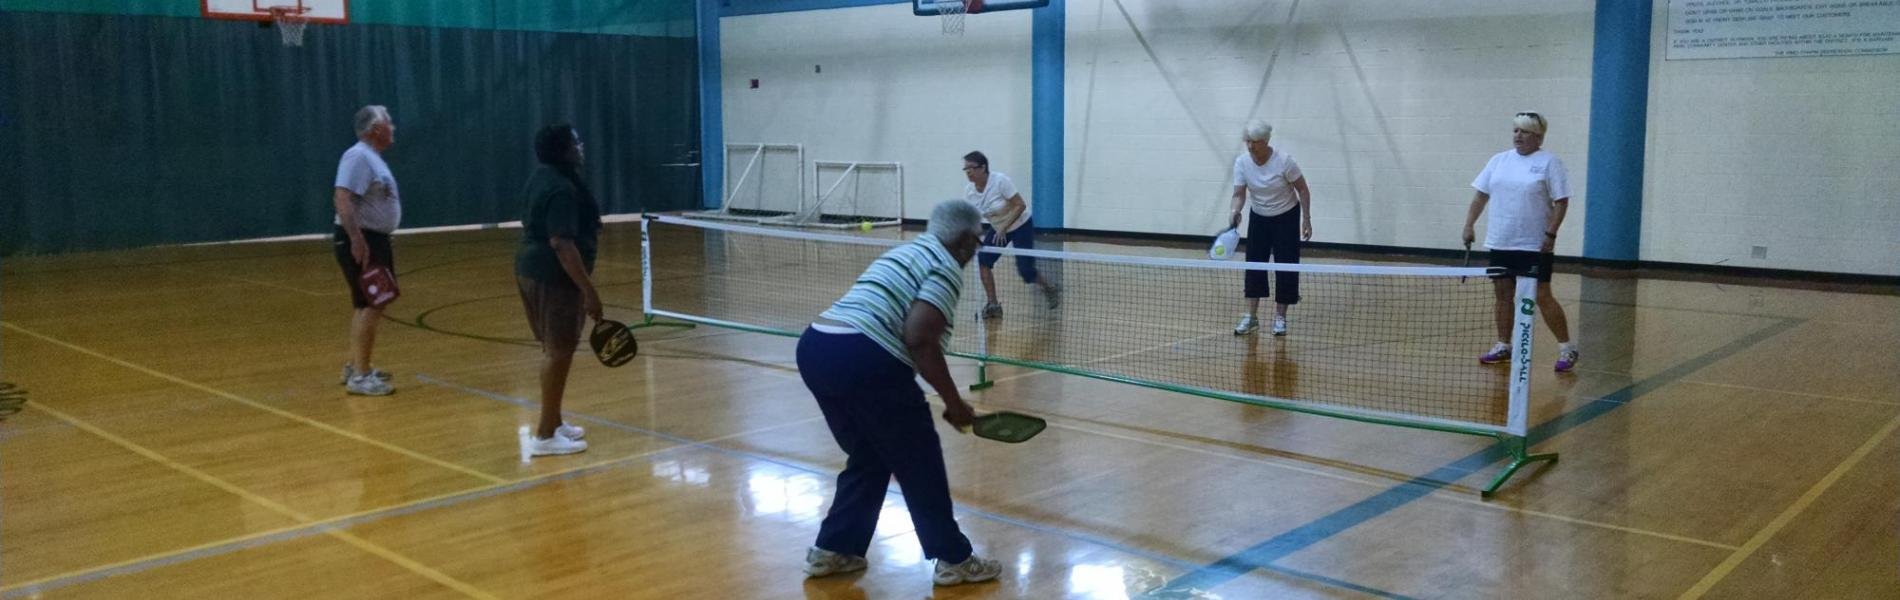 Pickleball Social